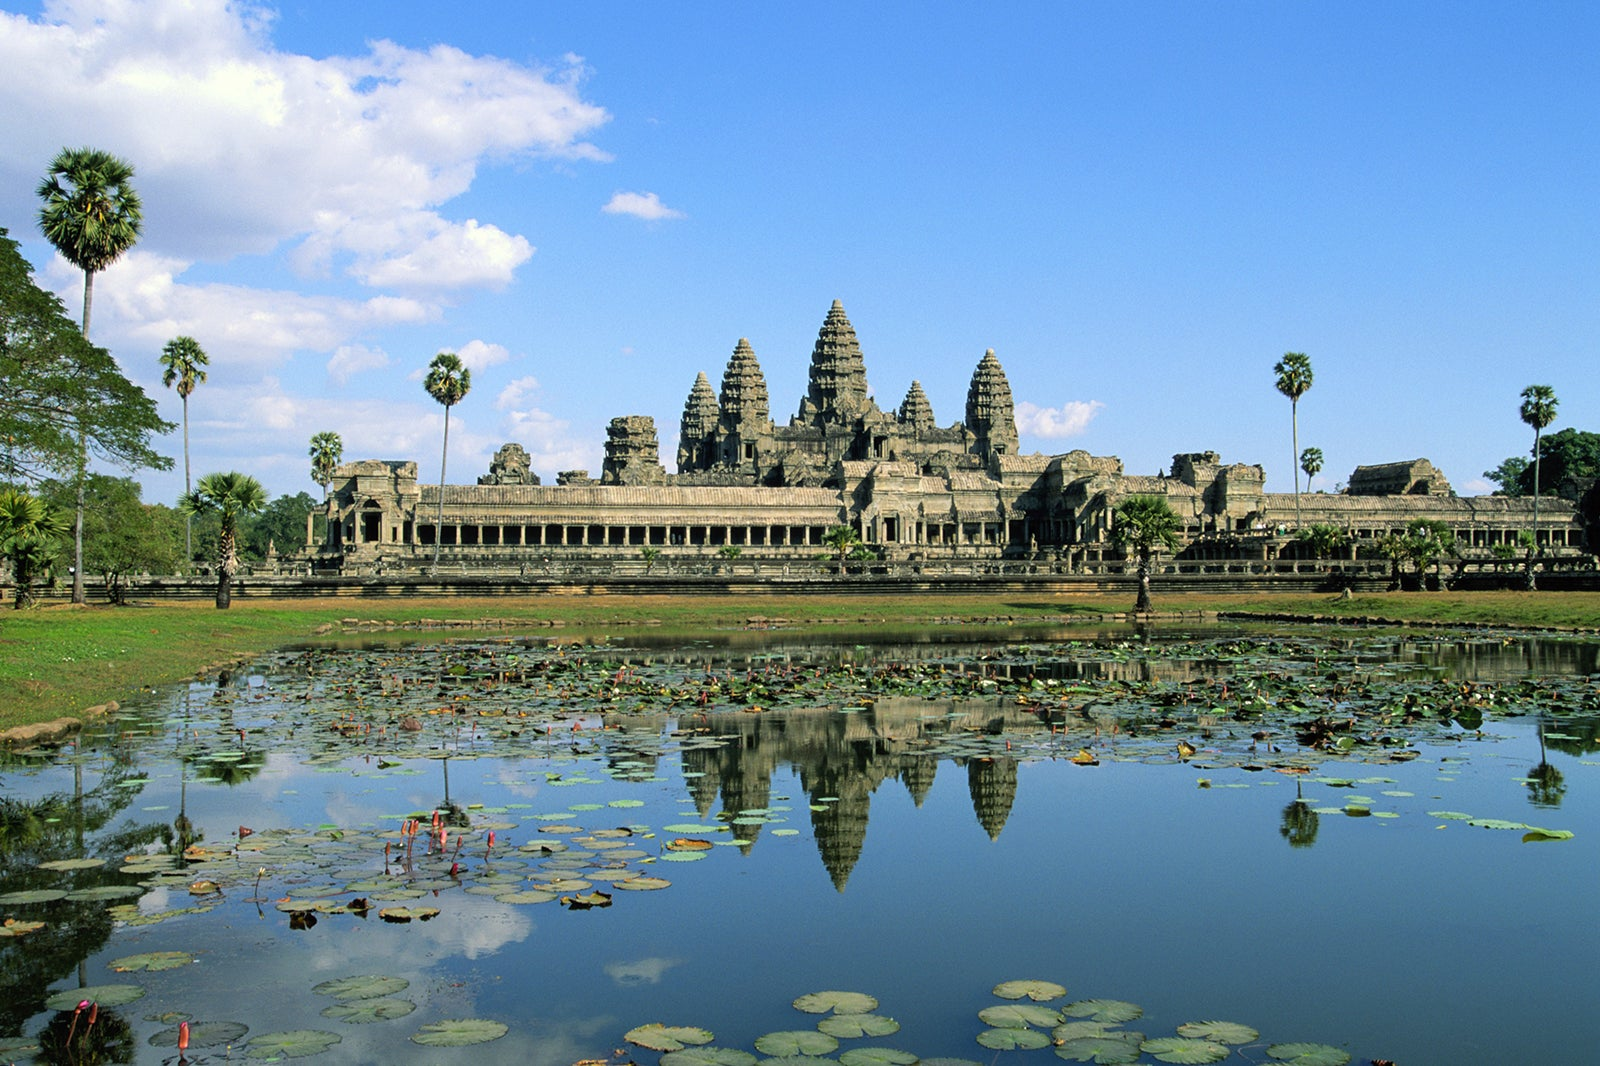 Angkor Wat Karte.31 Best Things To Do In Siem Reap What Is Siem Reap Most Famous For